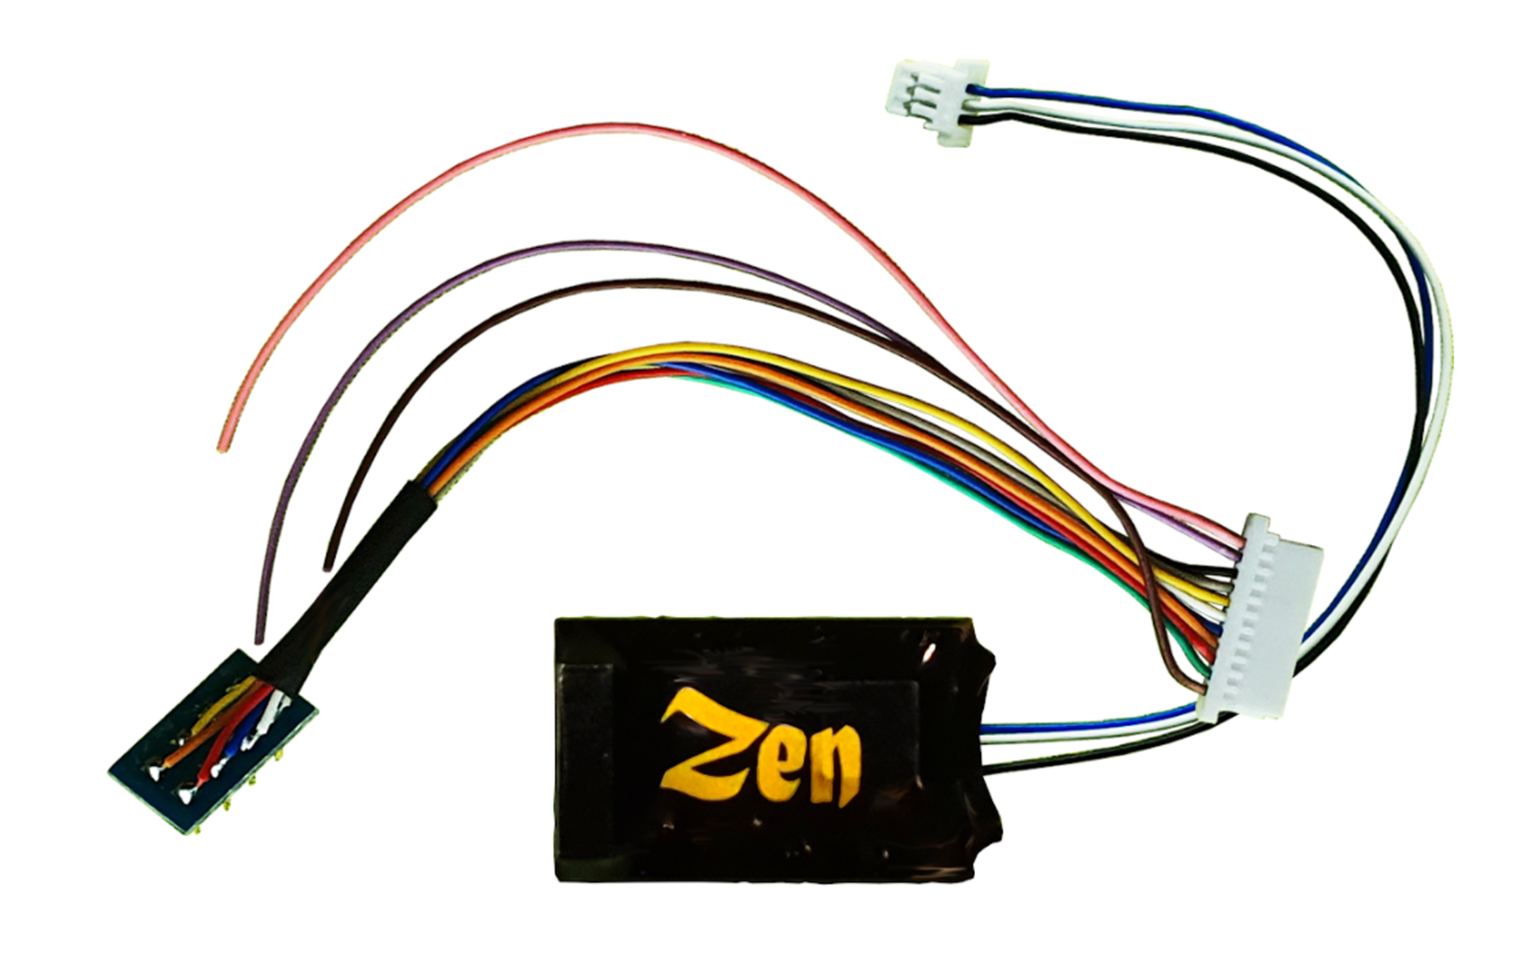 Zen Black Decoder. Midi-sized decoder with 8-pin harness. High Power. 6 Functions.